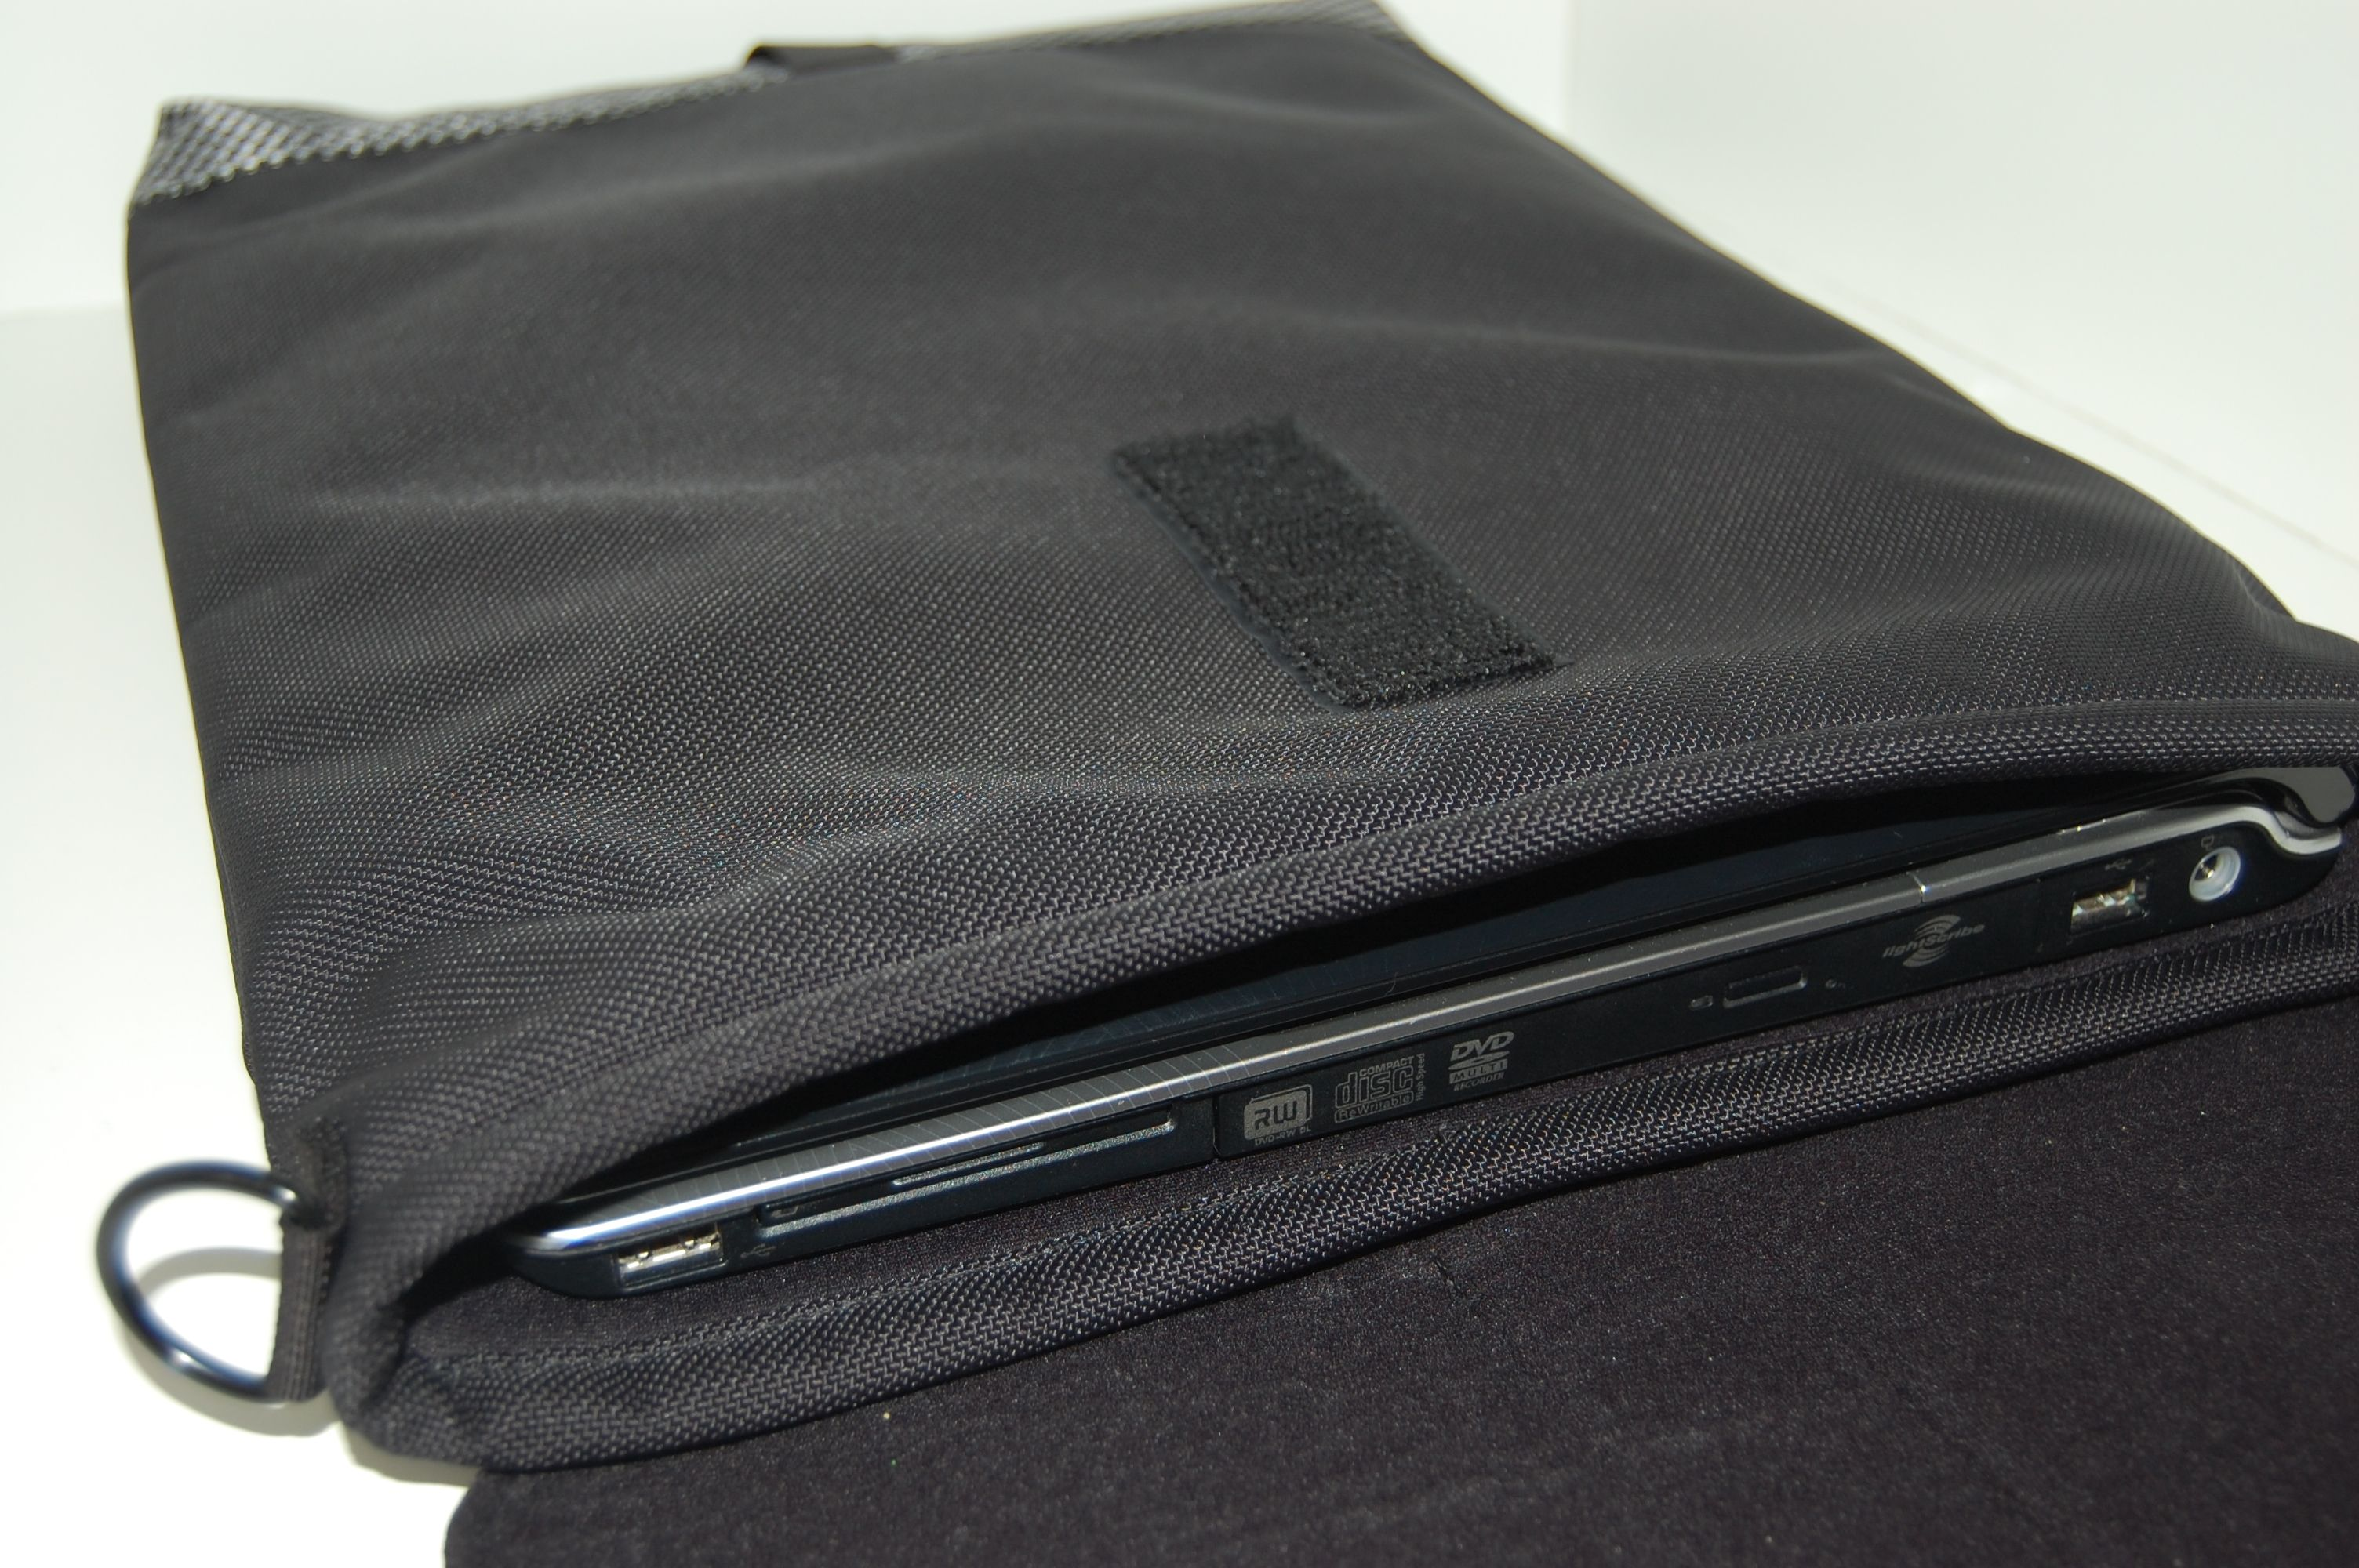 b_0_0_0_00_images_stories_bags_WaterfieldSleevecase_DSC_0754.JPG